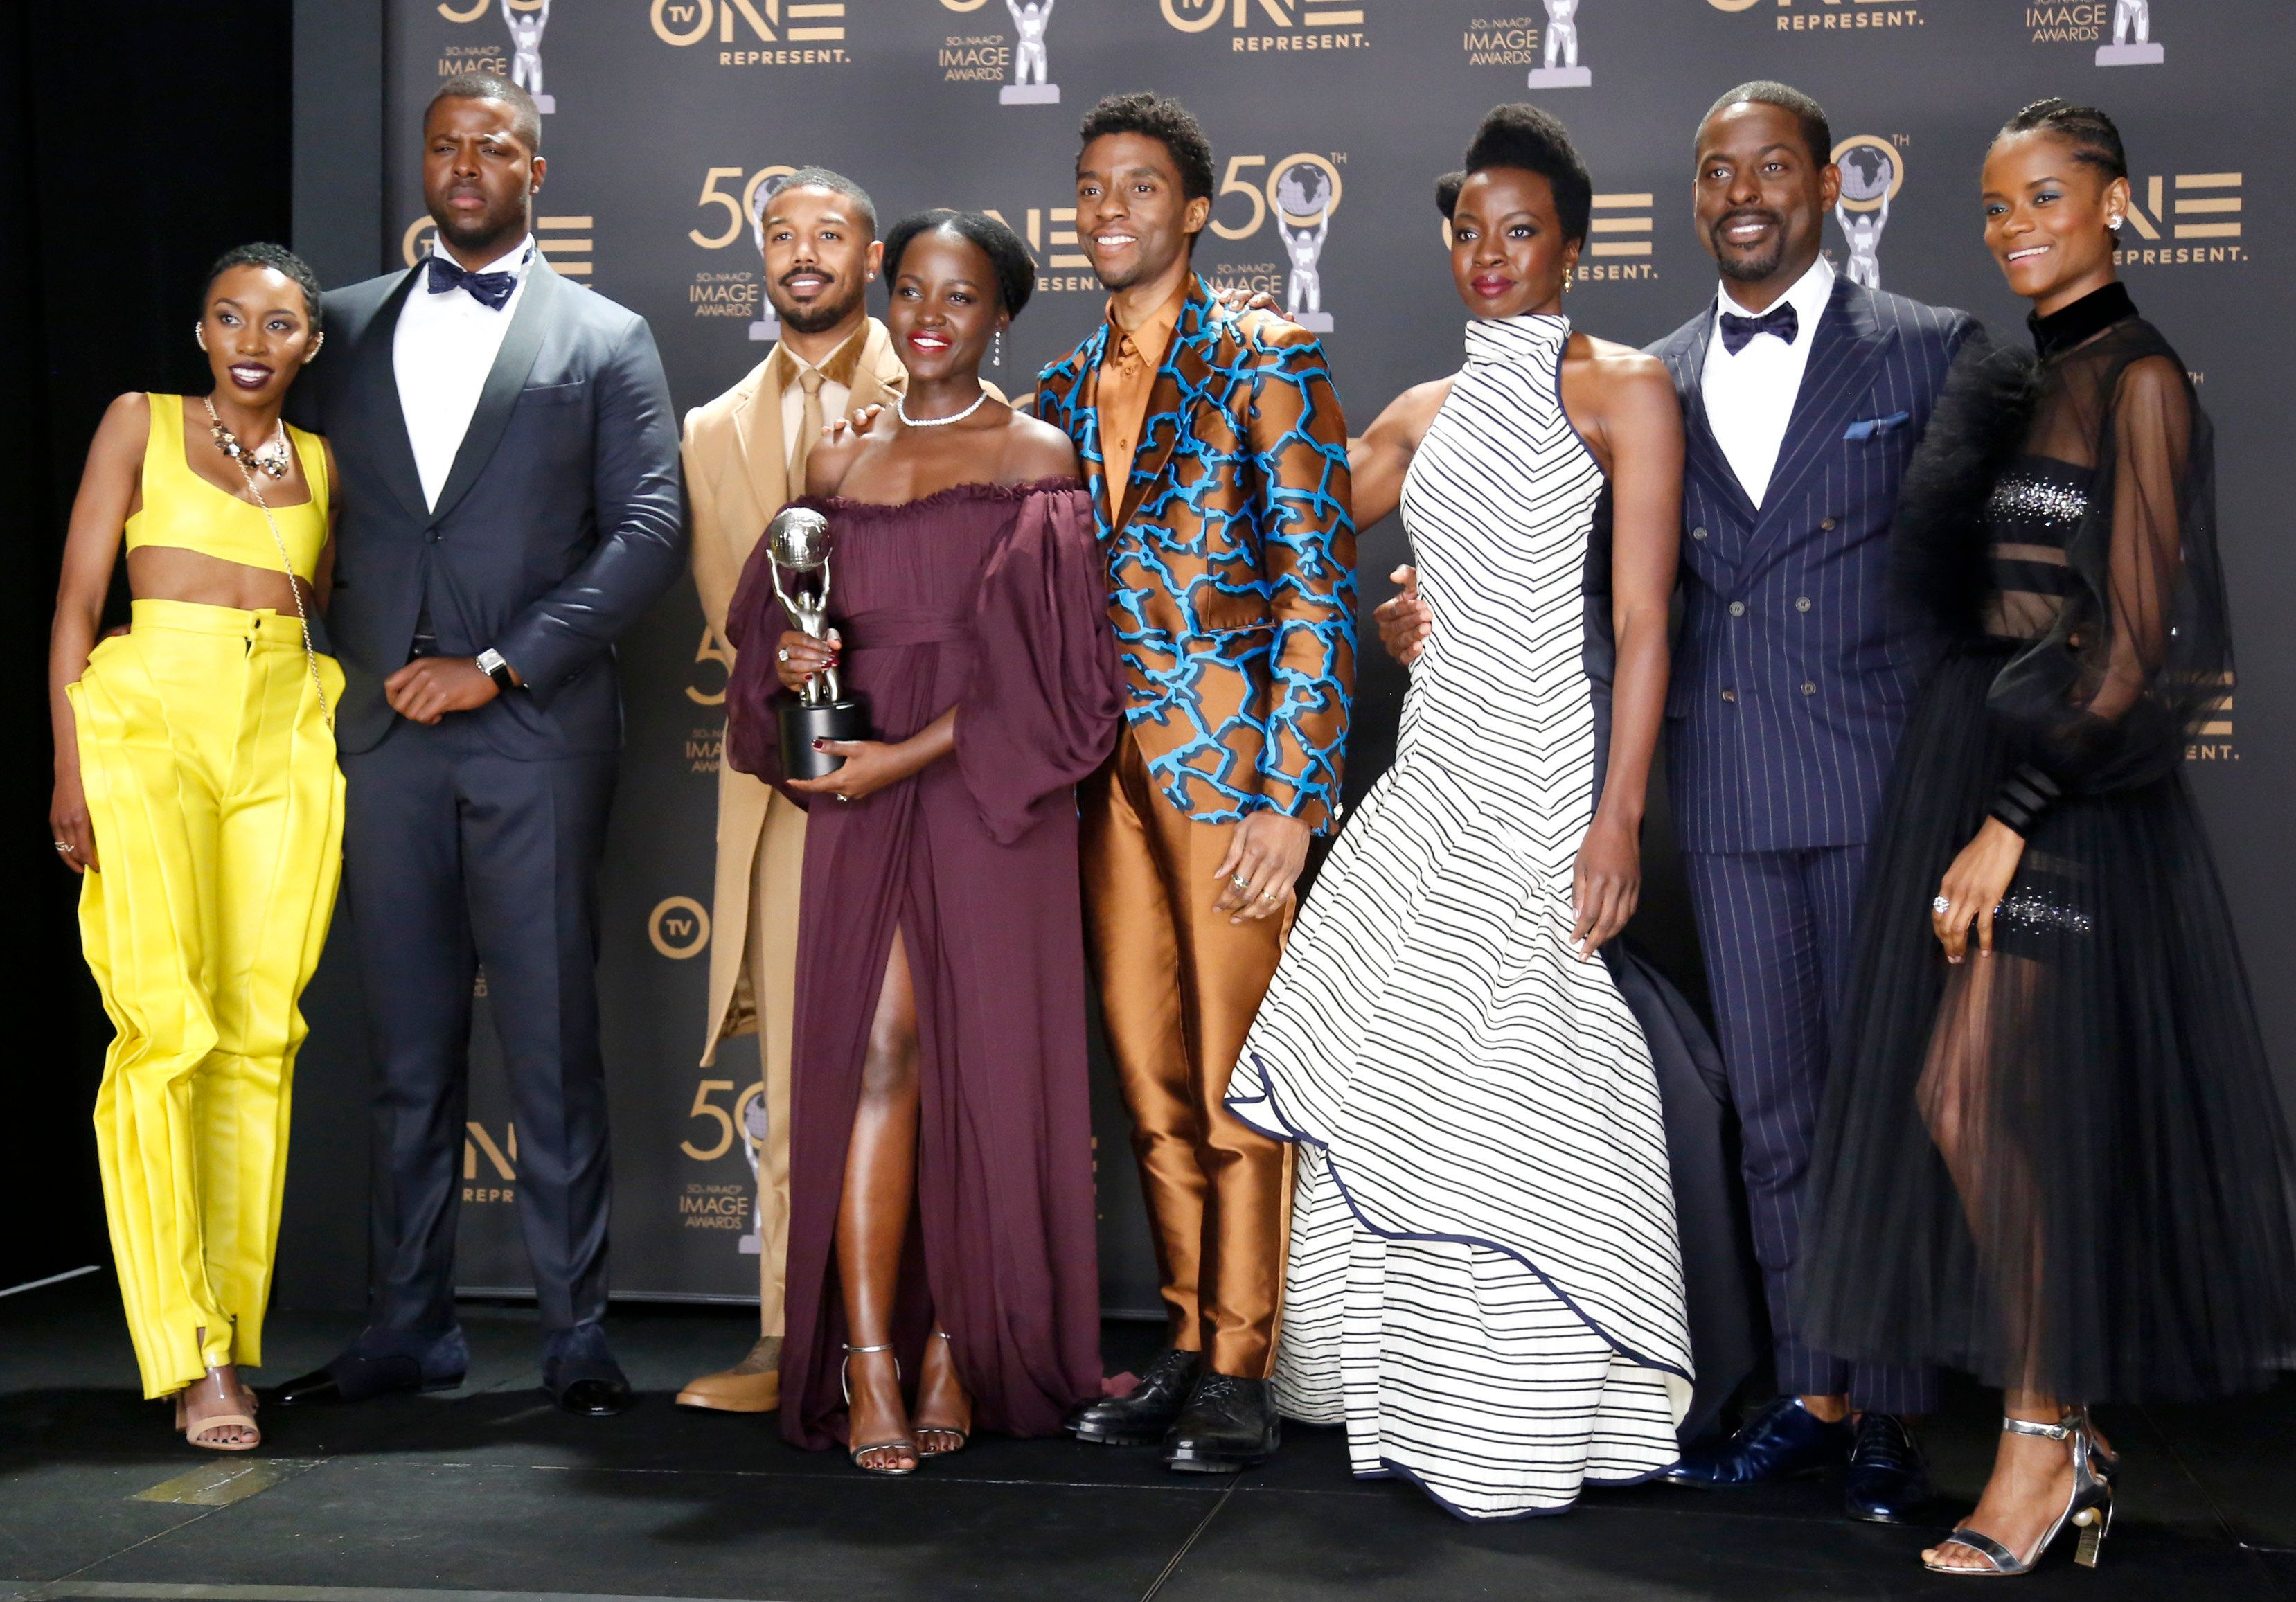 HOLLYWOOD, CALIFORNIA - MARCH 30: (L-R) Carrie Bernans, Winston Duke, Michael B. Jordan, Lupita Nyong'o, Chadwick Boseman, Danai Gurira, Sterling K. Brown, and Letitia Wright, winners of Outstanding Motion Picture and Outstanding Ensemble Cast in a Motion Picture for 'Black Panther', attend the 50th NAACP Image Awards at Dolby Theatre on March 30, 2019 in Hollywood, California. (Photo by Liliane Lathan/Getty Images for NAACP)